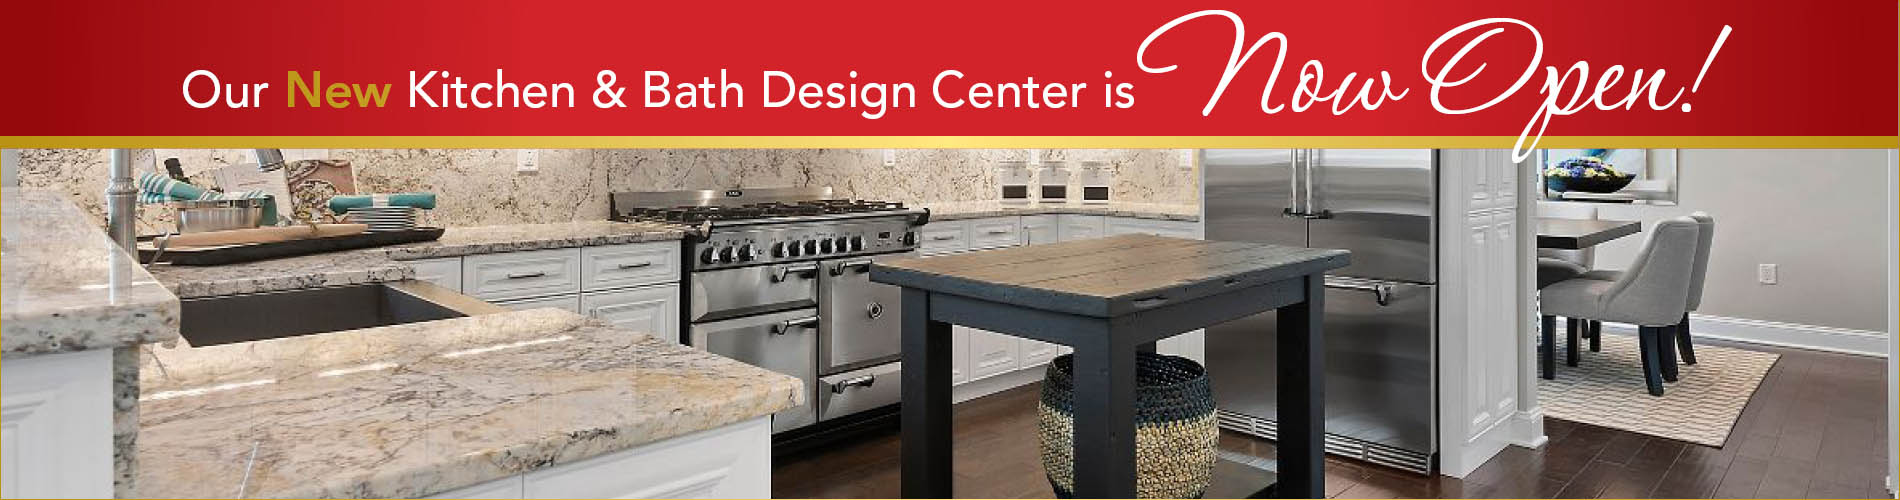 Our New Kitchen U0026 Bath Design Center Is Now Open! Come Visit Us Today!